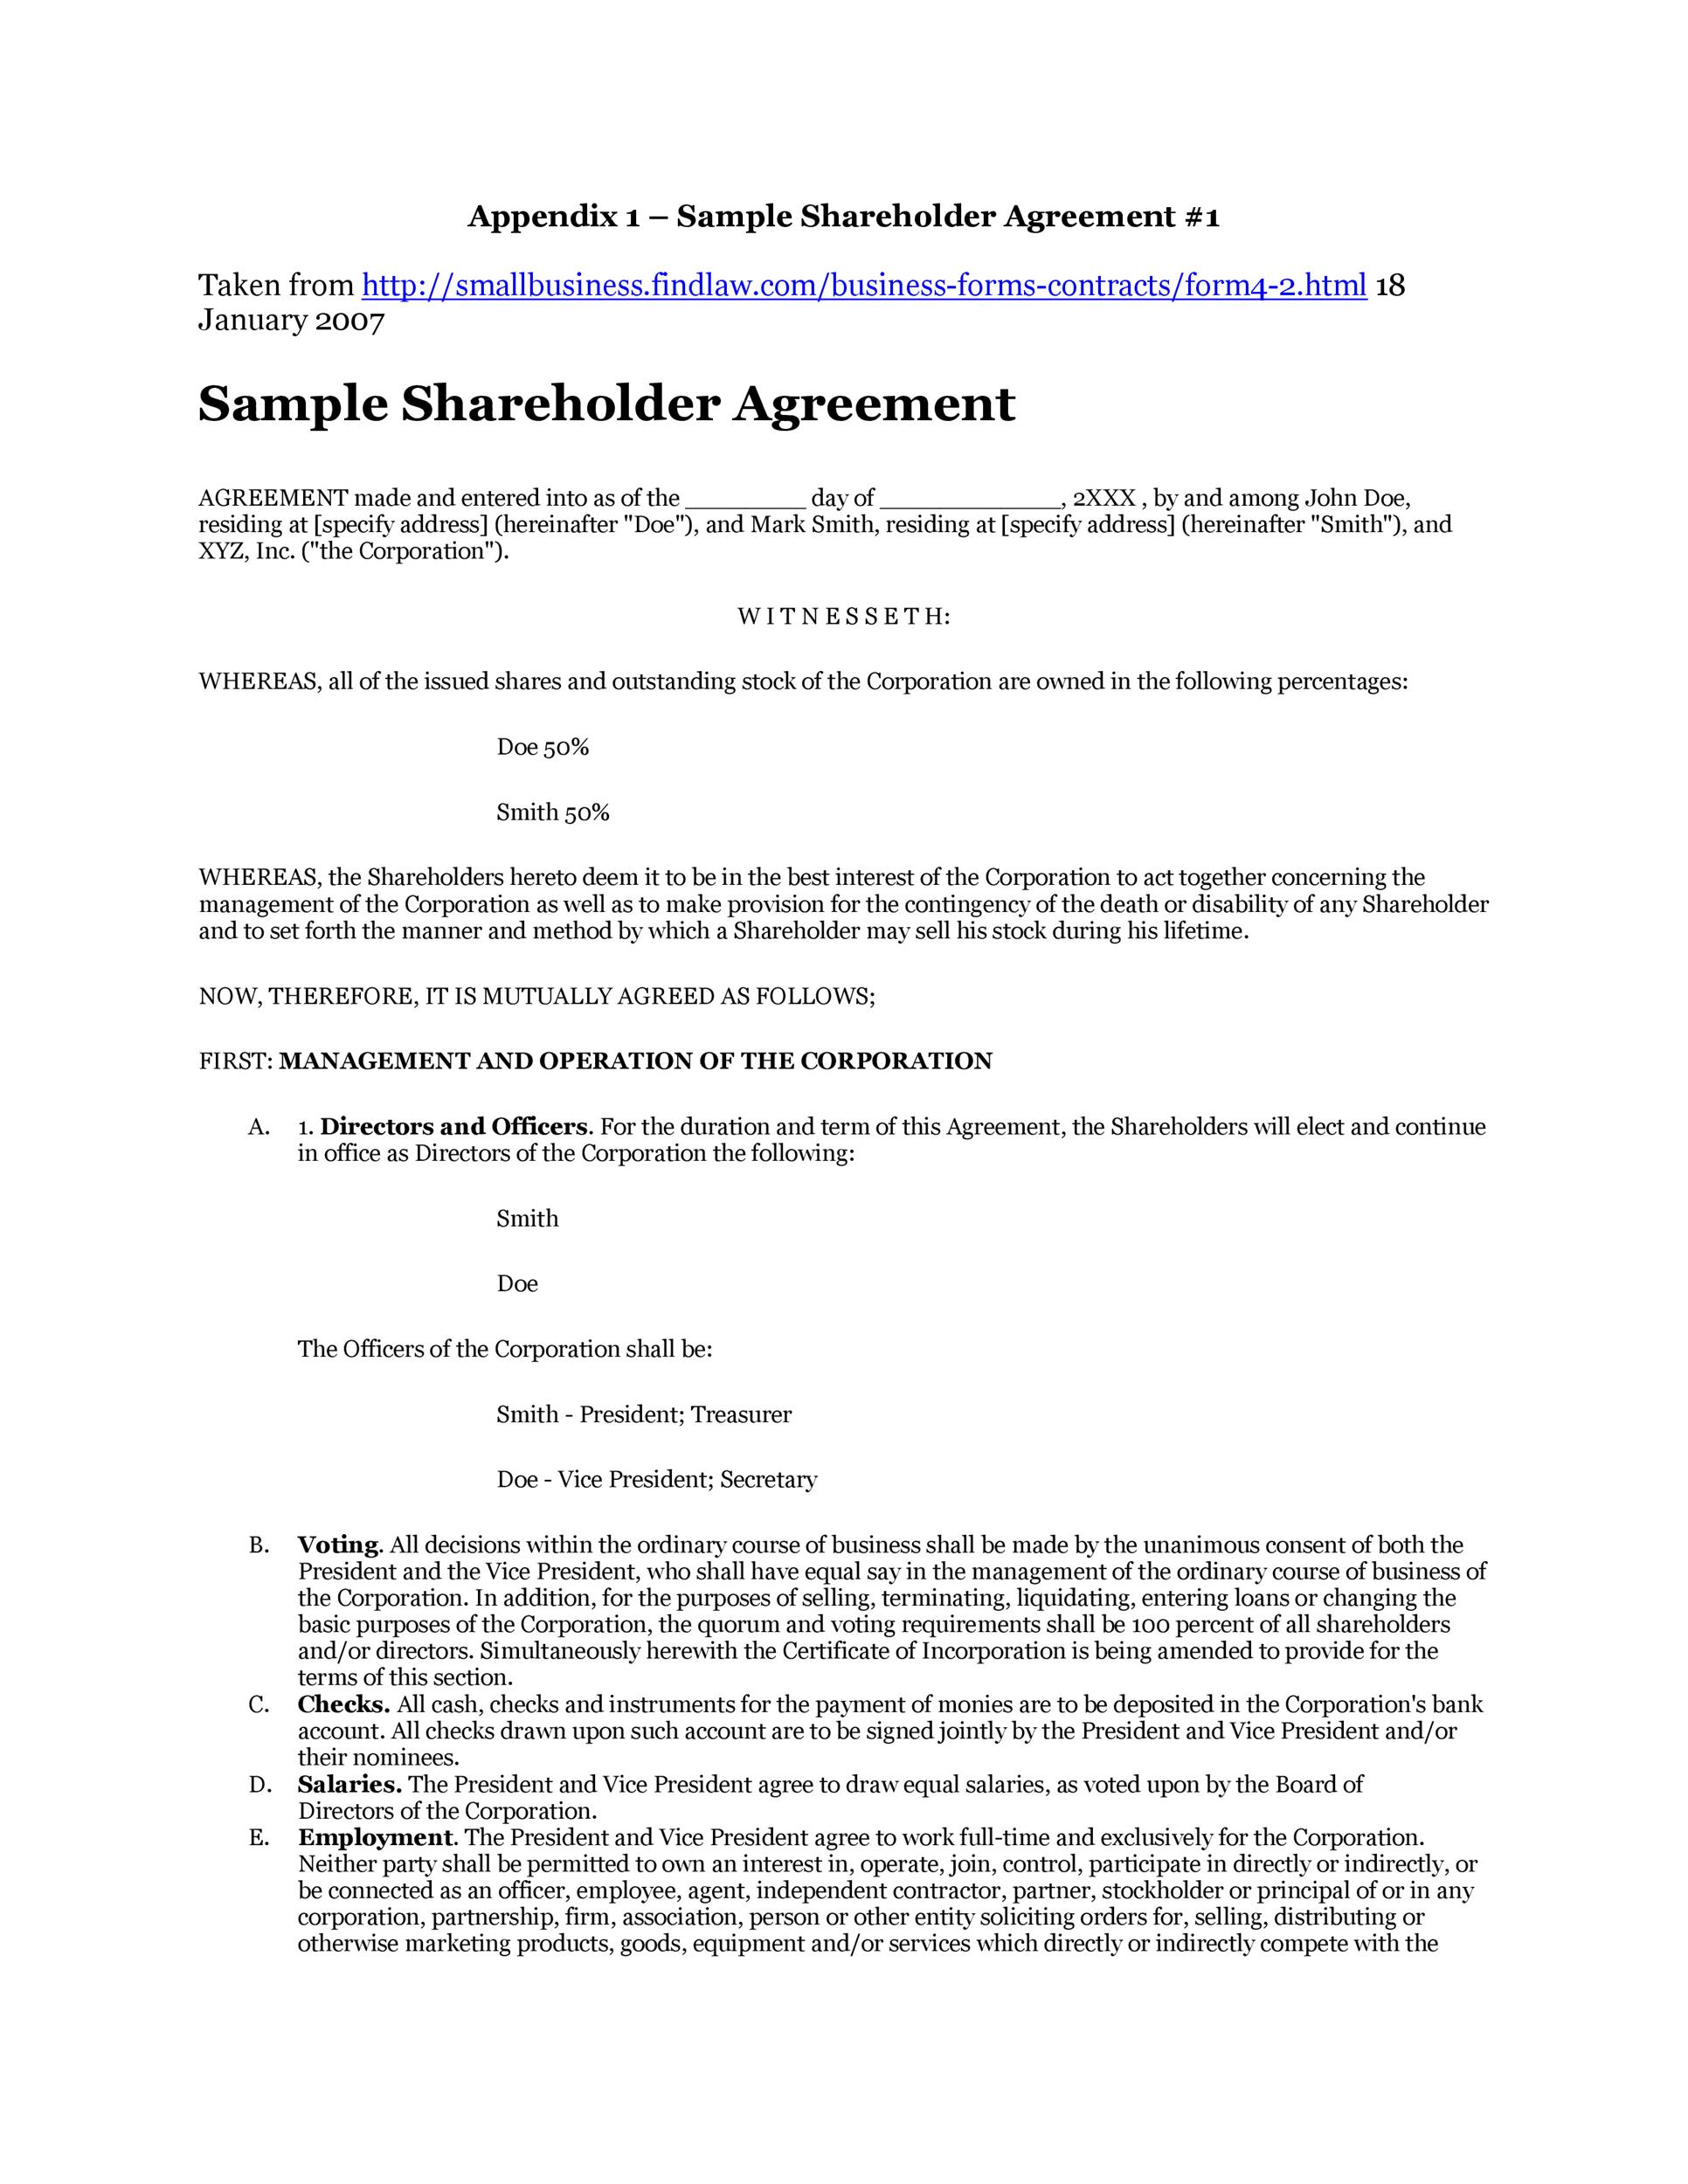 Free shareholder agreement 09